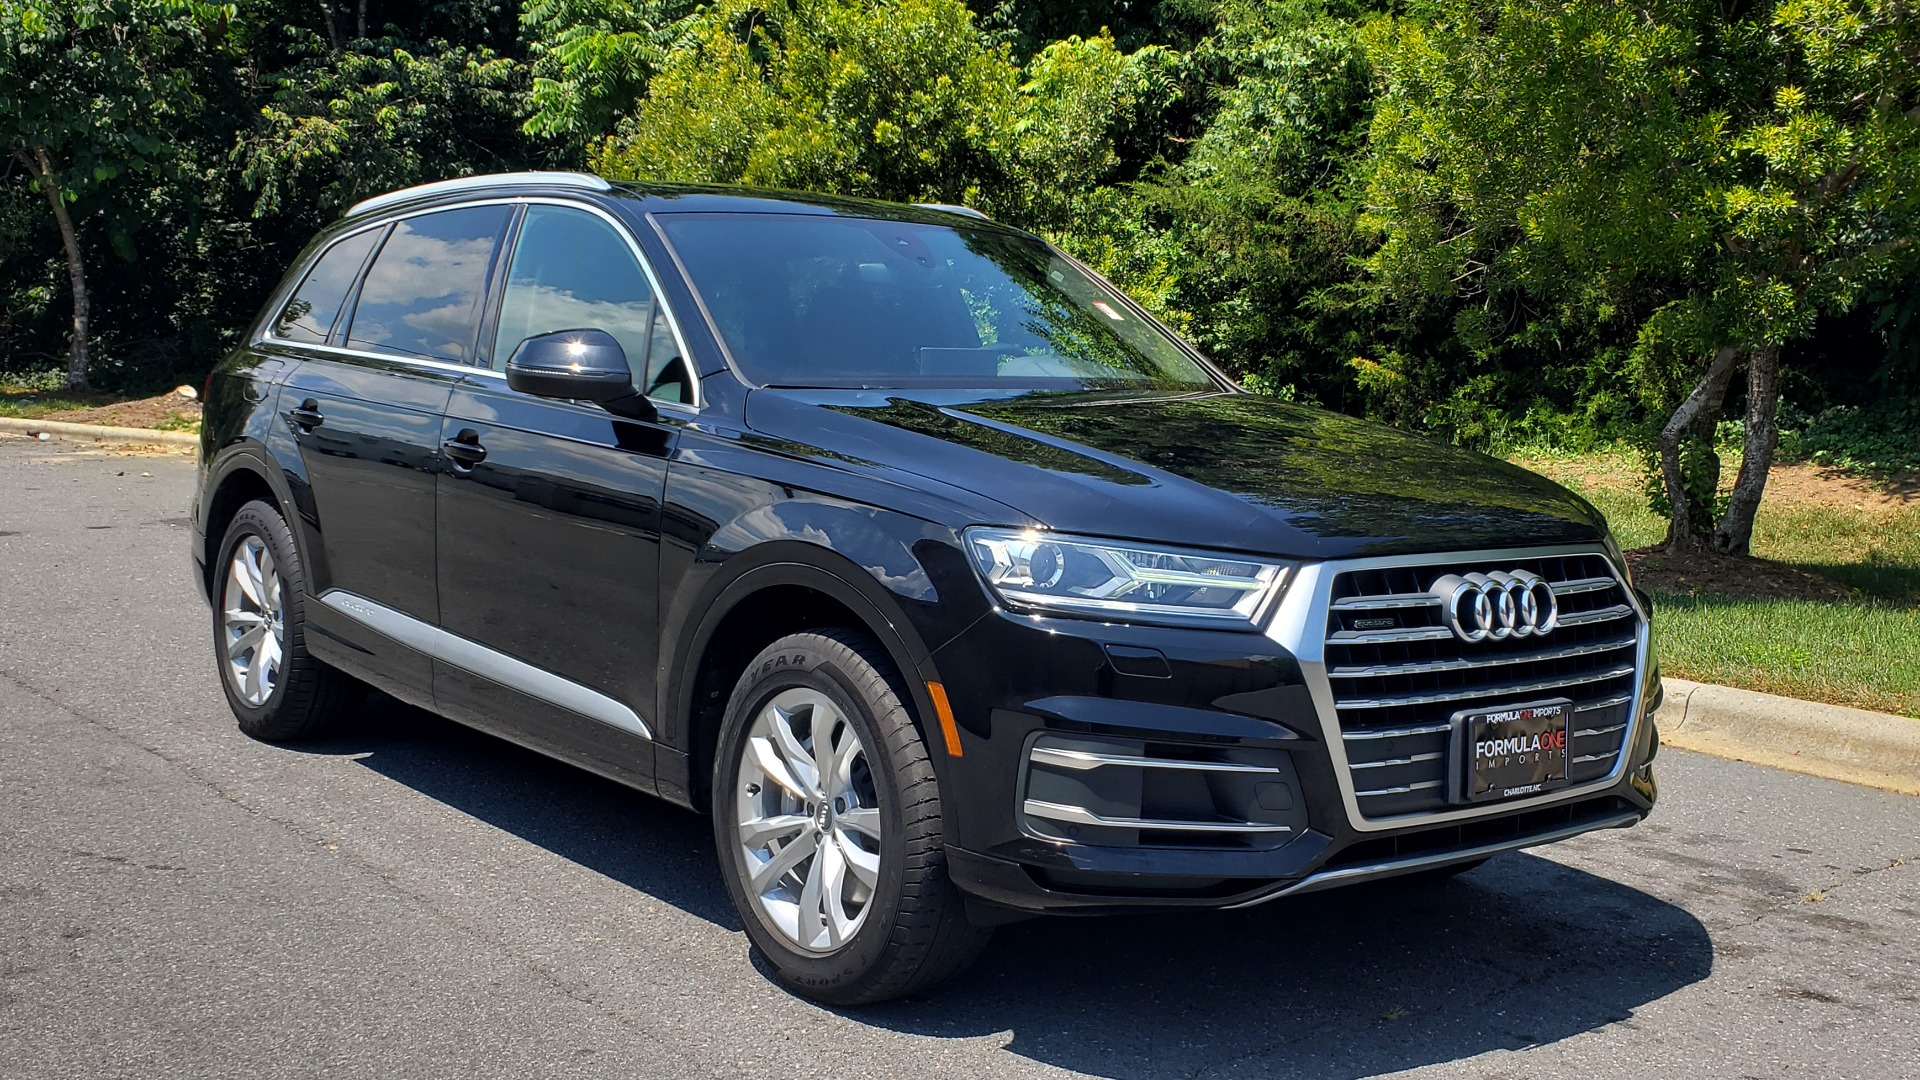 Used 2017 Audi Q7 PREMIUM PLUS / NAV / CLD WTHR / 3-ROW / REARVIEW for sale $35,399 at Formula Imports in Charlotte NC 28227 4